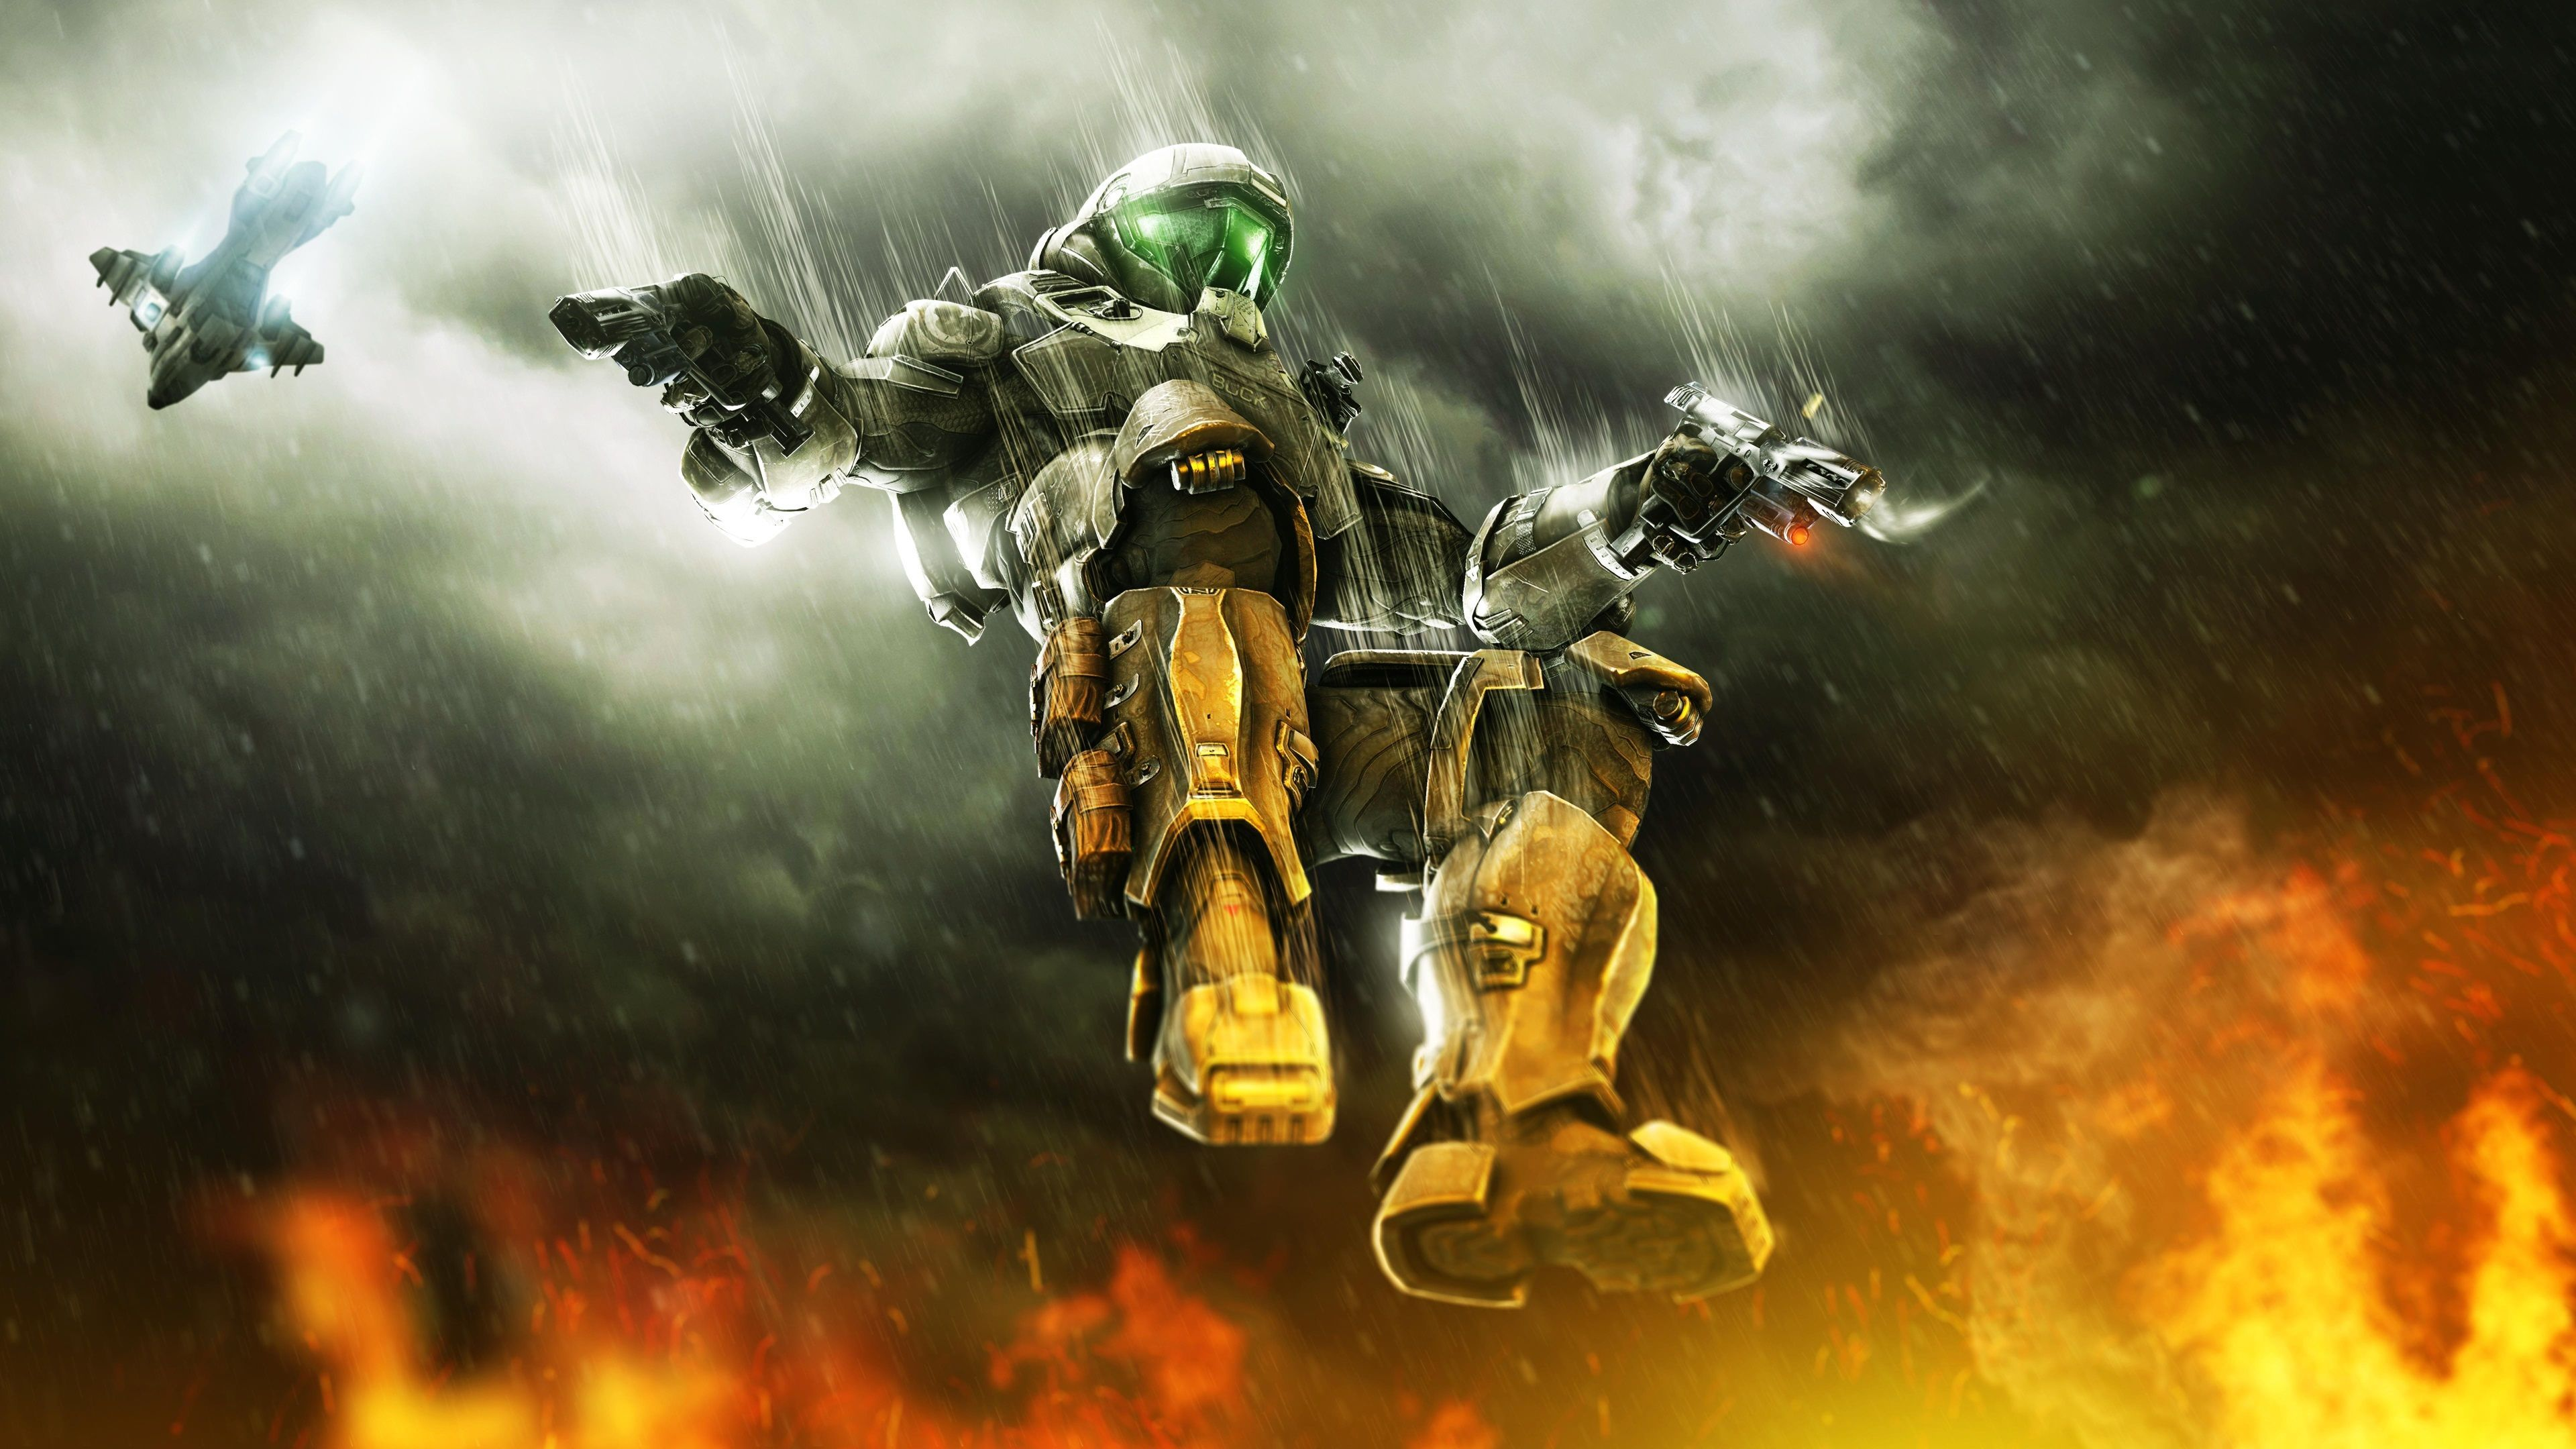 Halo Master Chief 4K Wallpapers - Top Free Halo Master ...